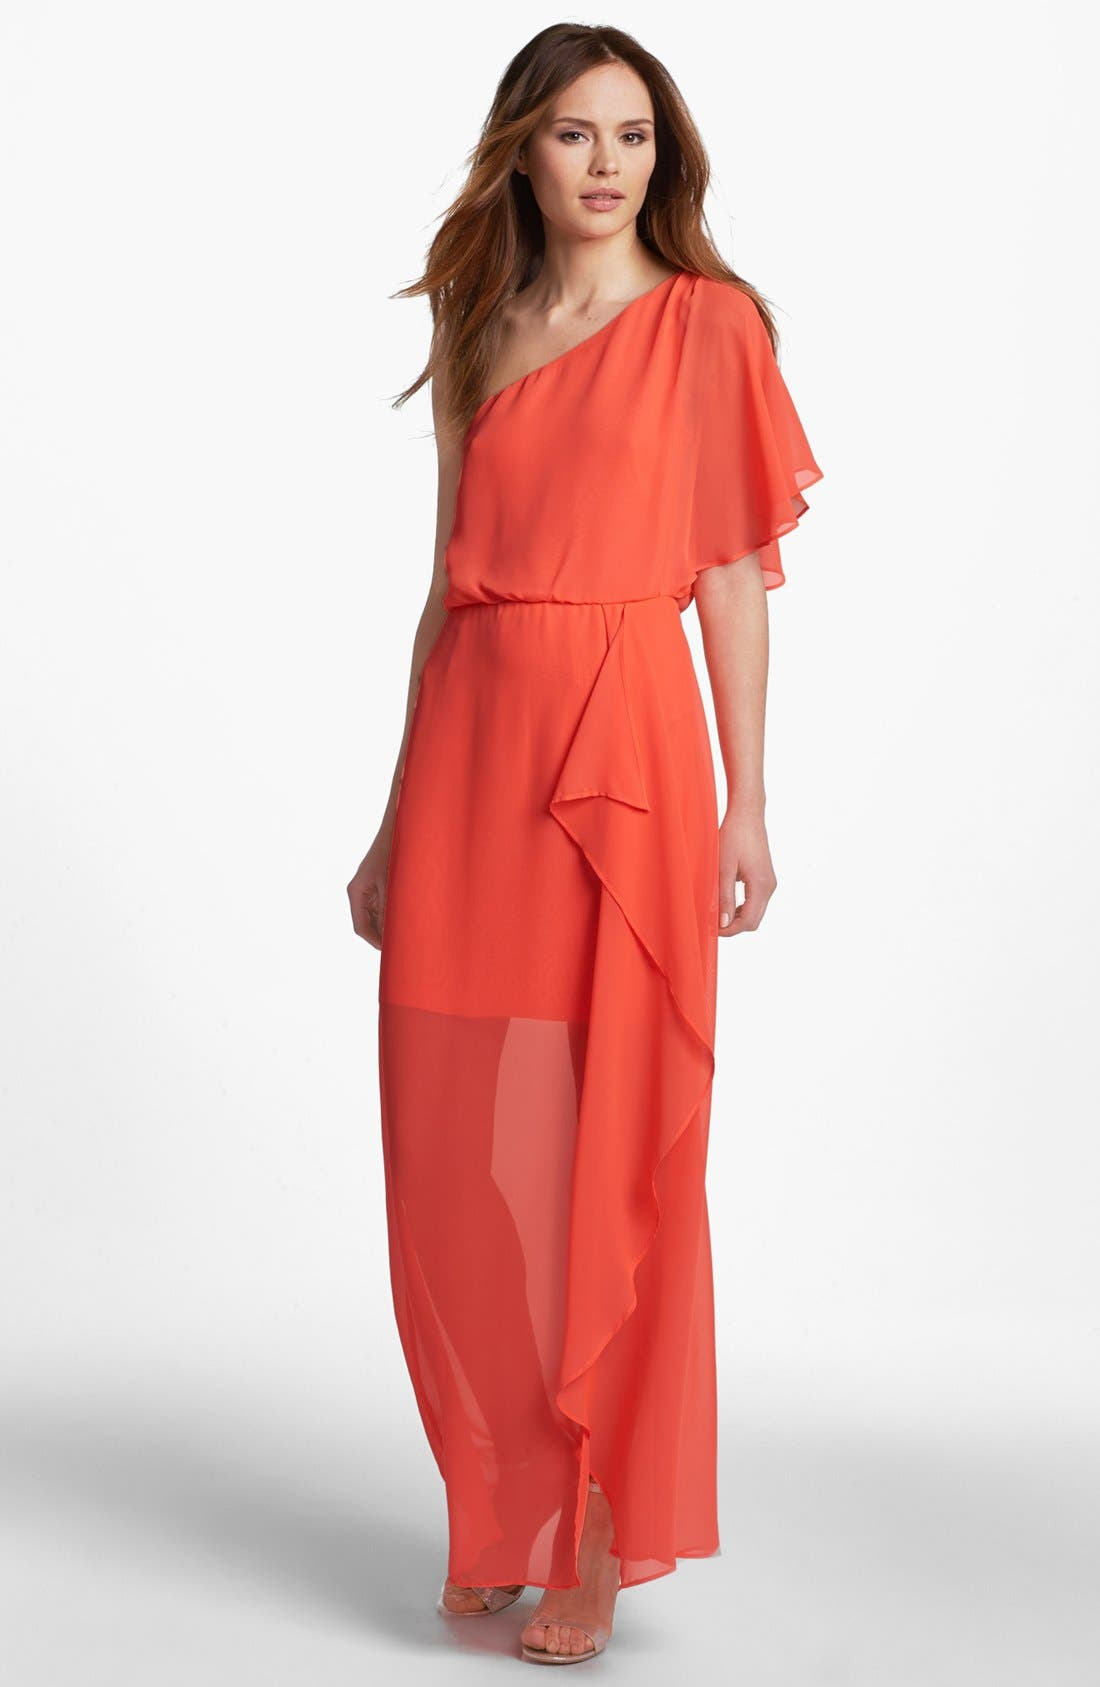 Alternate Image 1 Selected - Hailey by Adrianna Papell One Shoulder Chiffon Dress